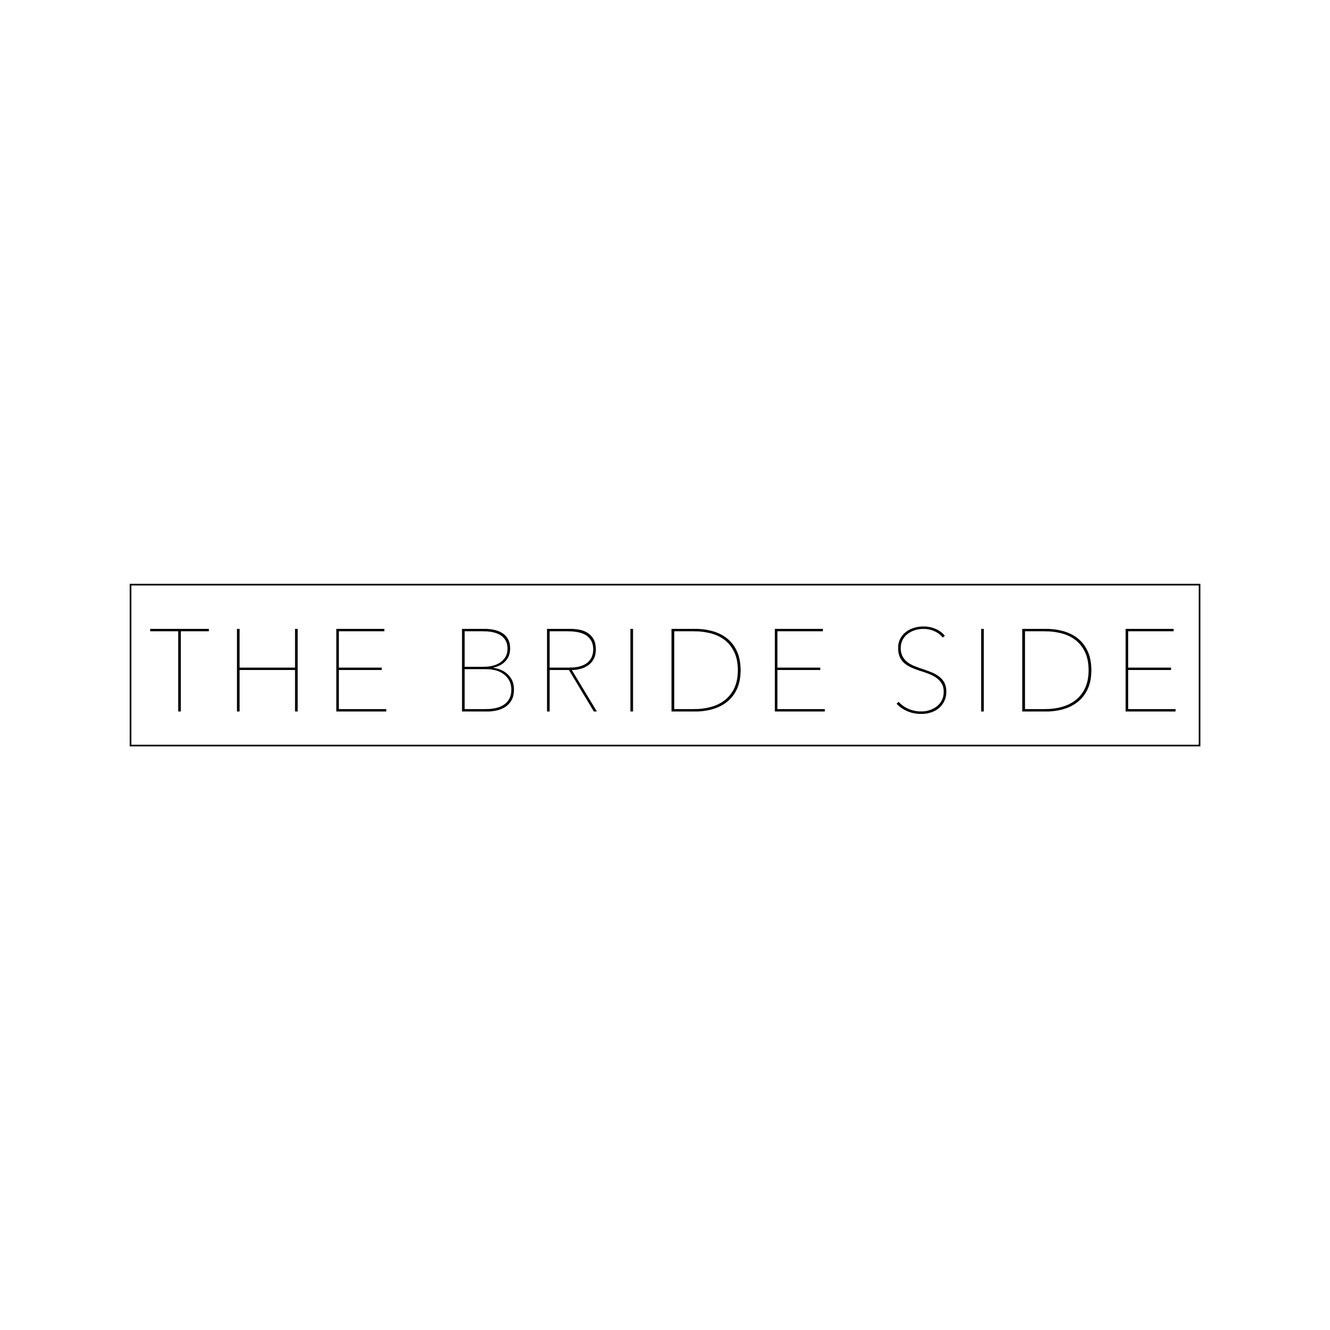 (c) Thebrideside.be